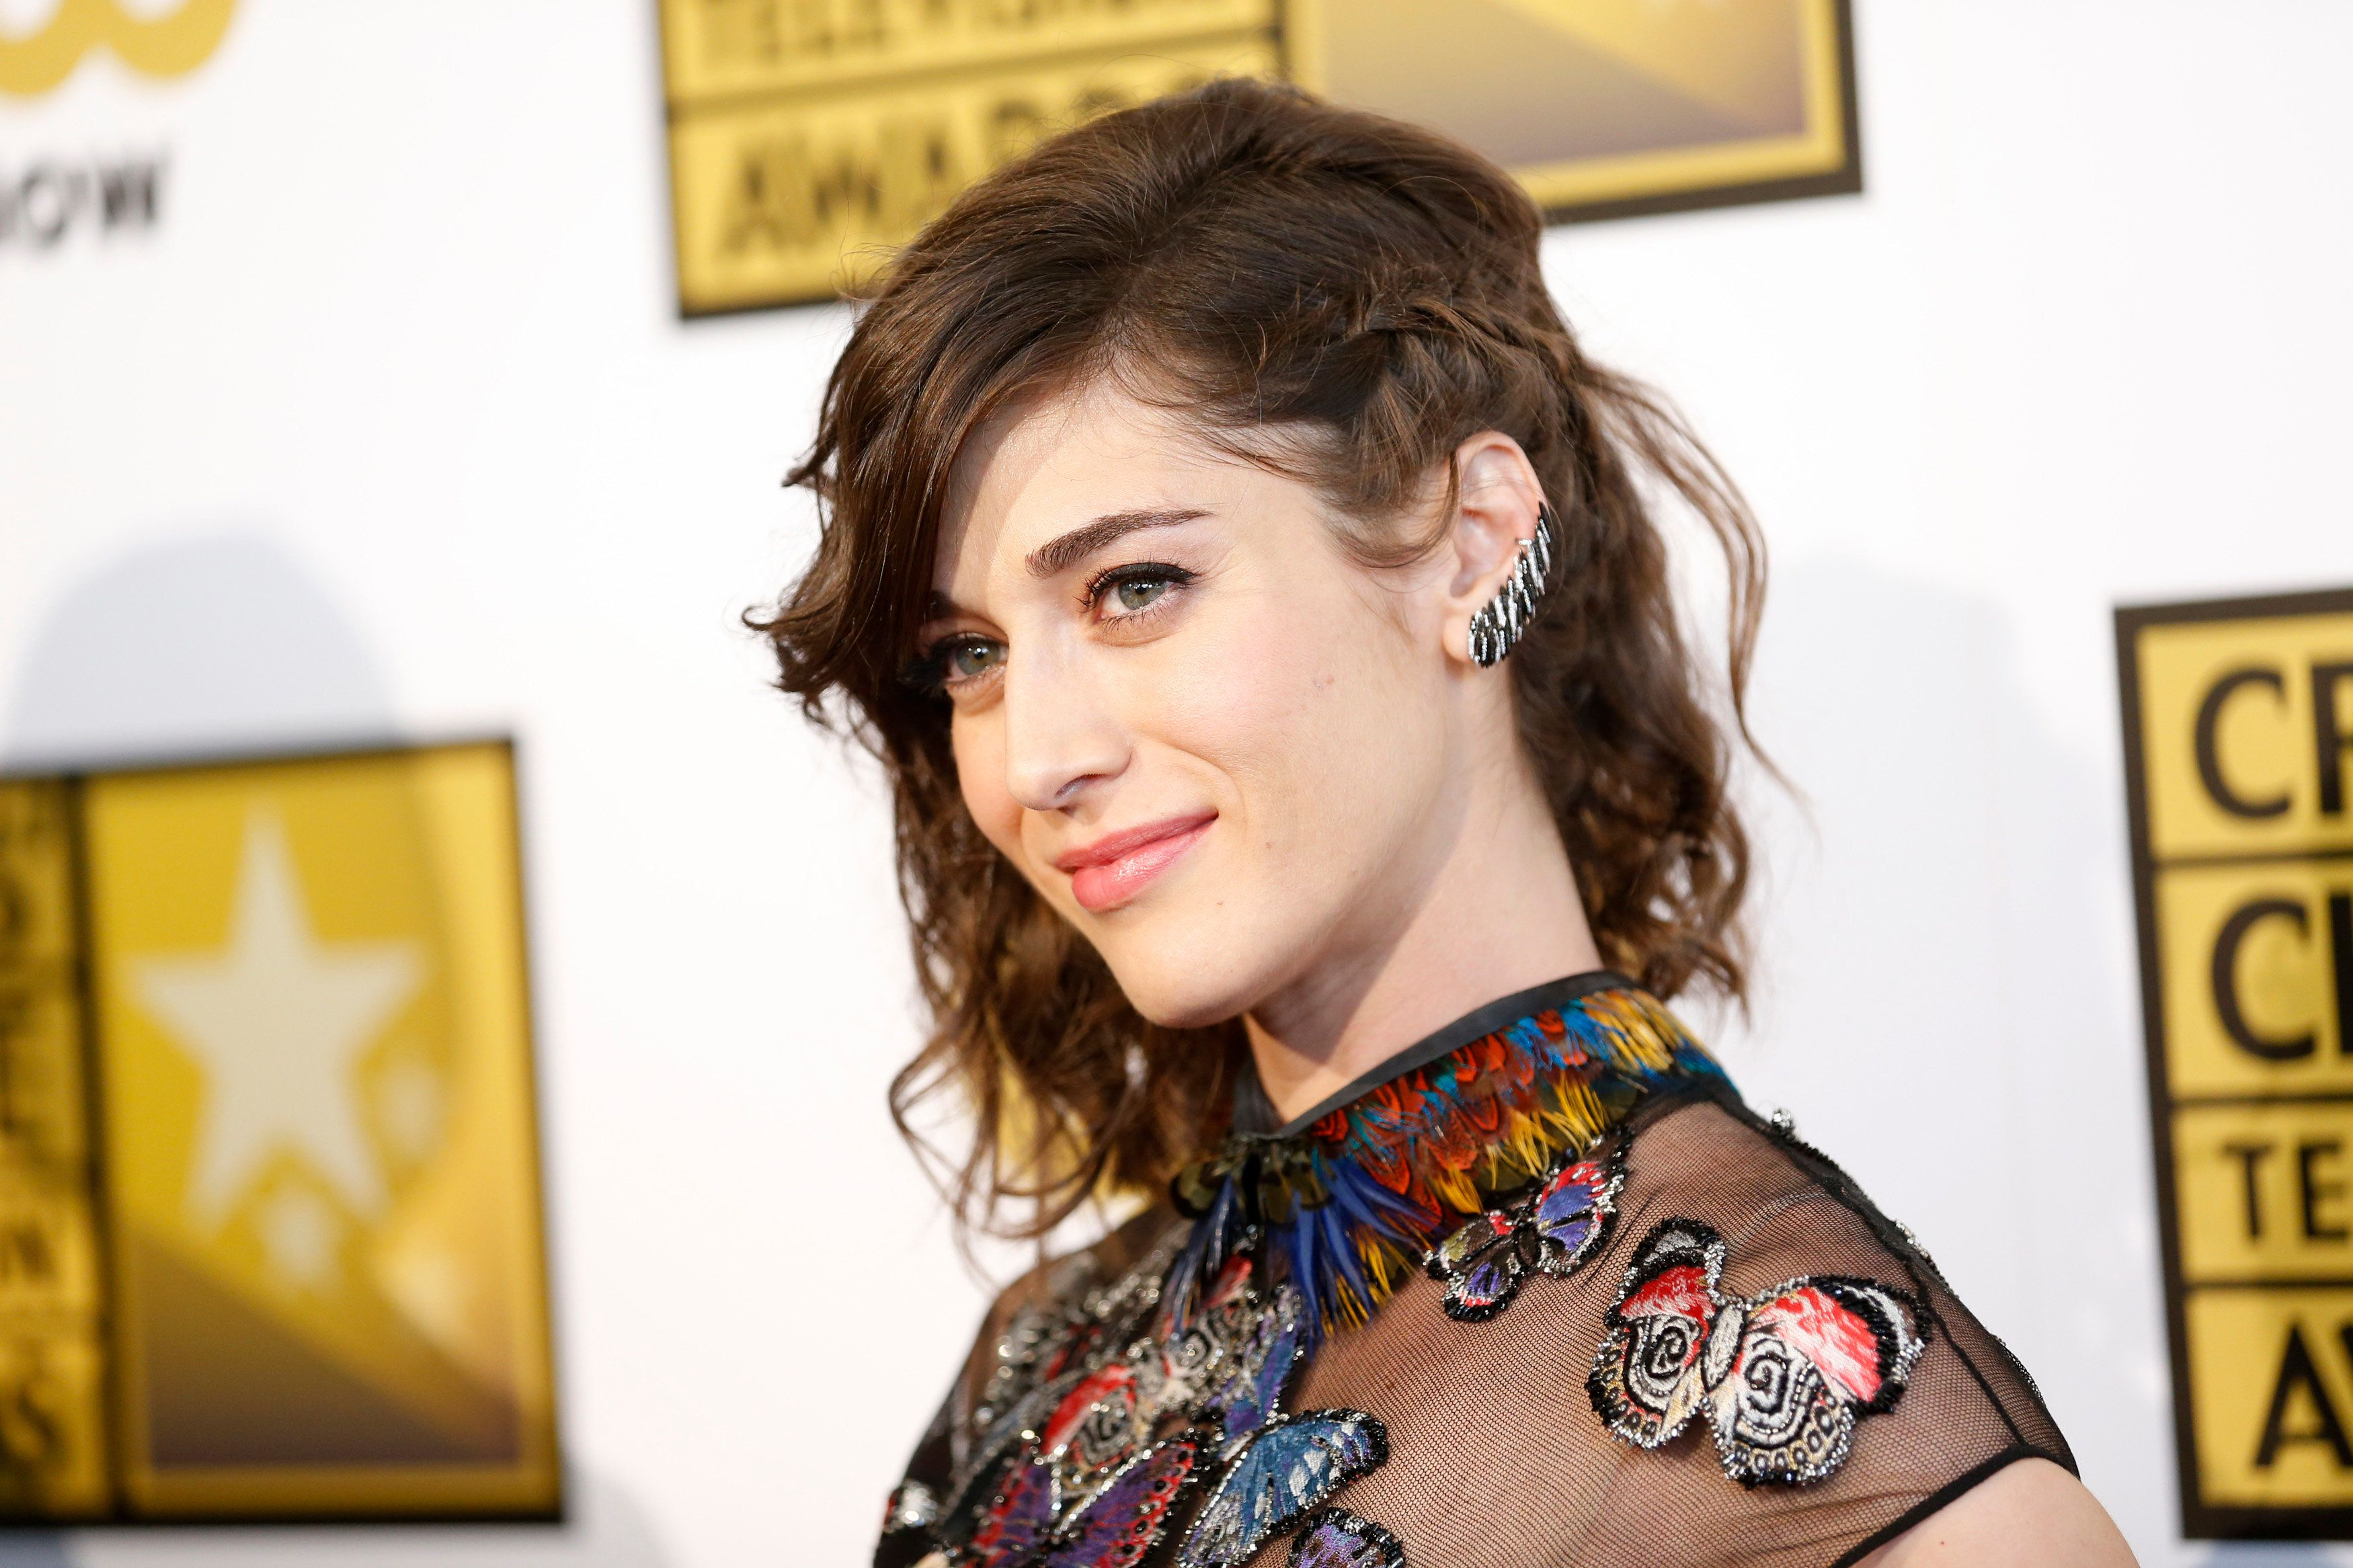 Actress Lizzy Caplan poses at the 4th annual Critics' Choice Television Awards in Beverly Hills, California June 19, 2014. REUTERS/Danny Moloshok (UNITED STATES - Tags: ENTERTAINMENT)